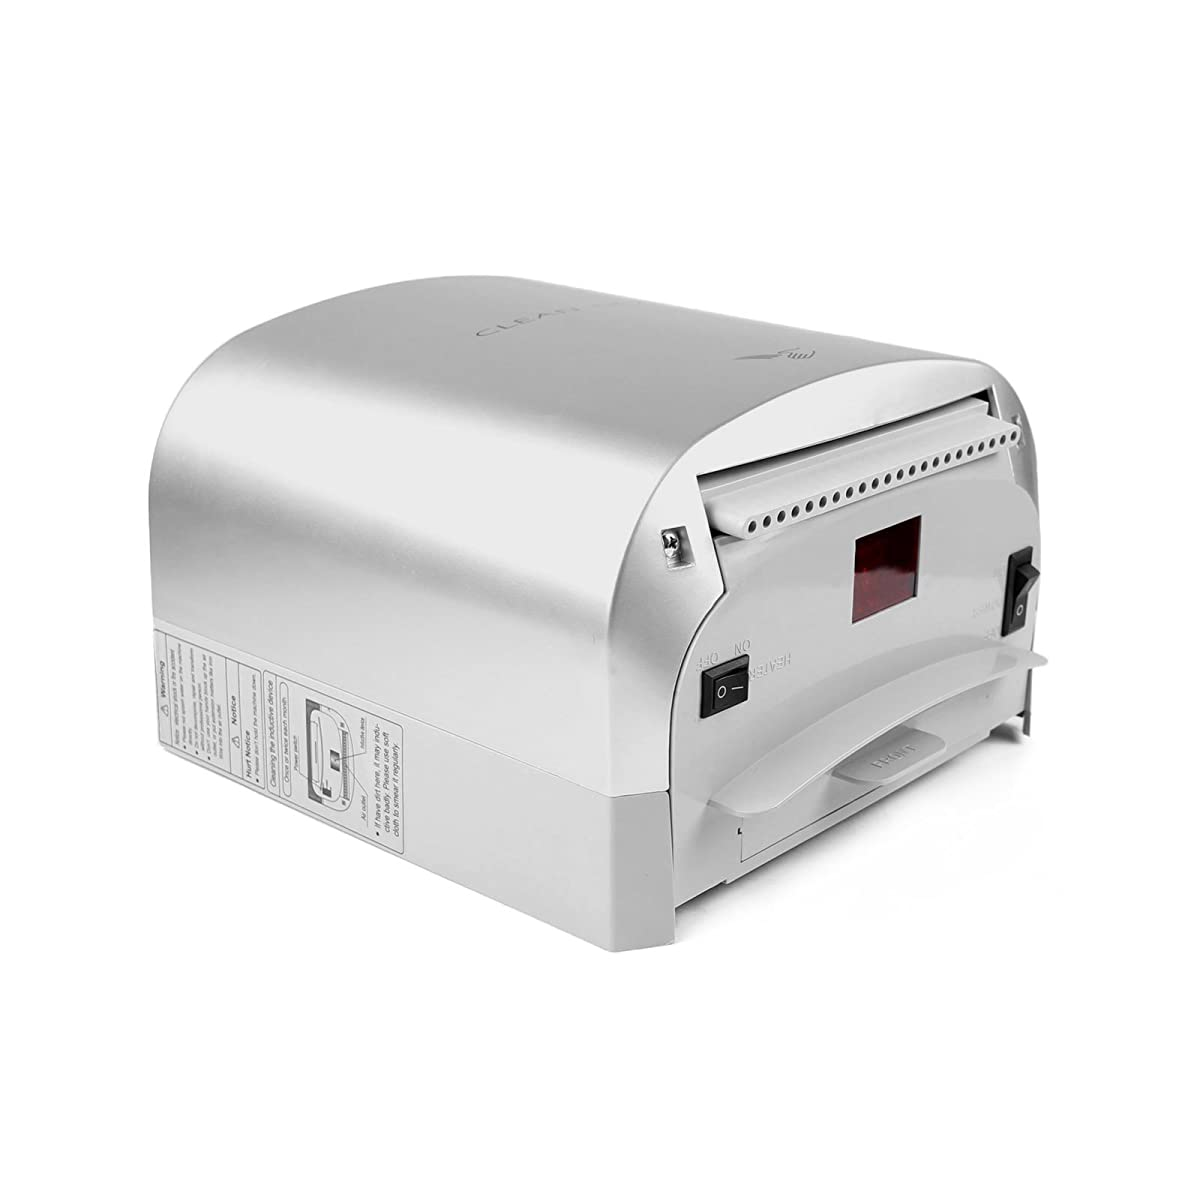 PENSON & CO. Instant Heat & Dry Super Quiet Commercial High Speed 95m/s Automatic Electric Hand Dryer Silver